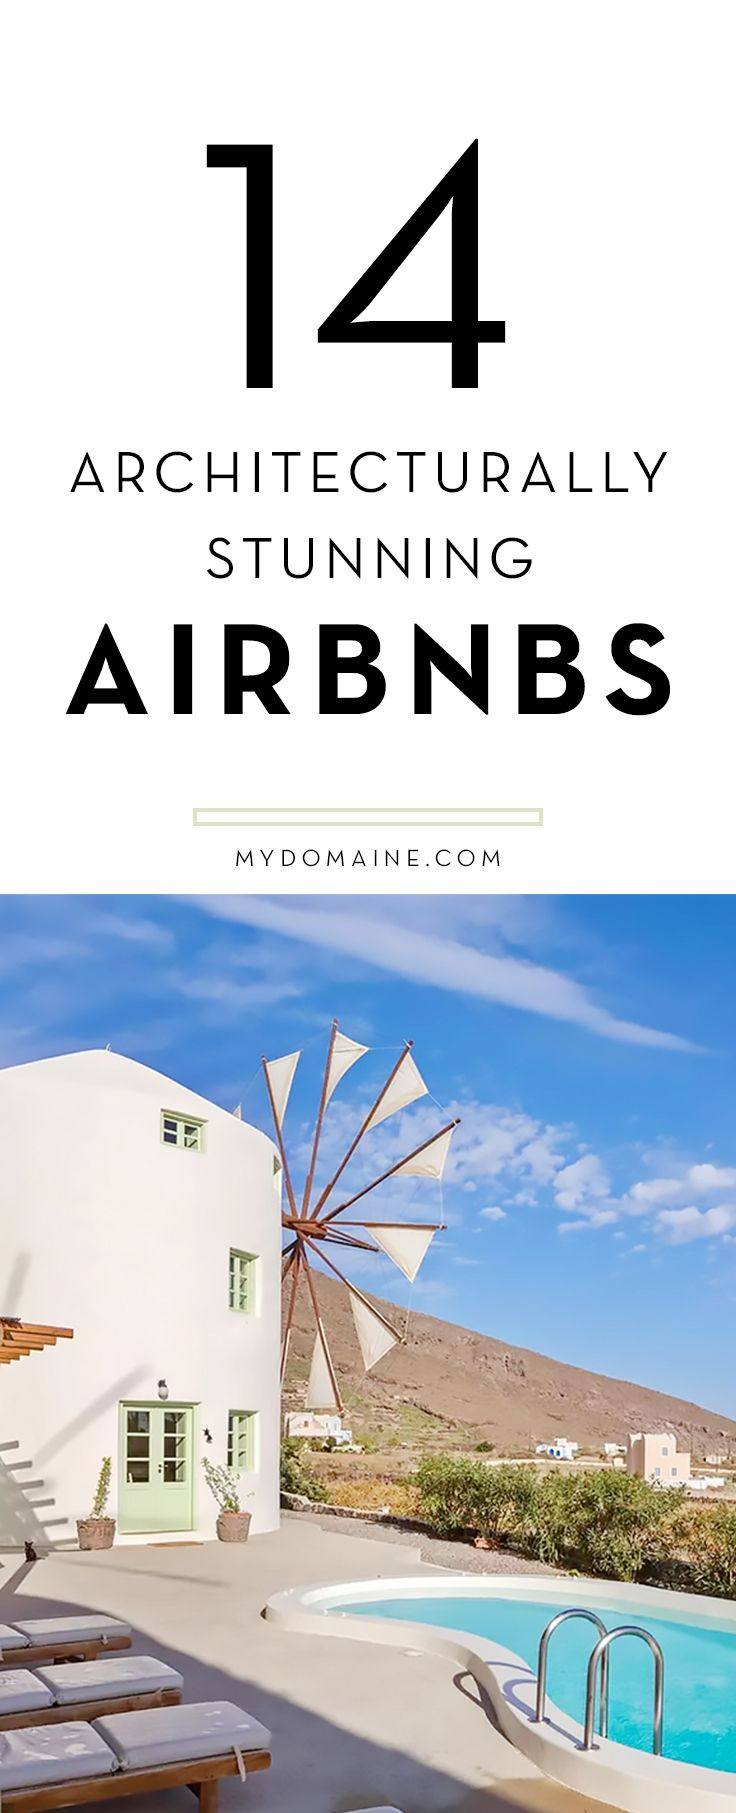 The coolest Airbnb's in the world